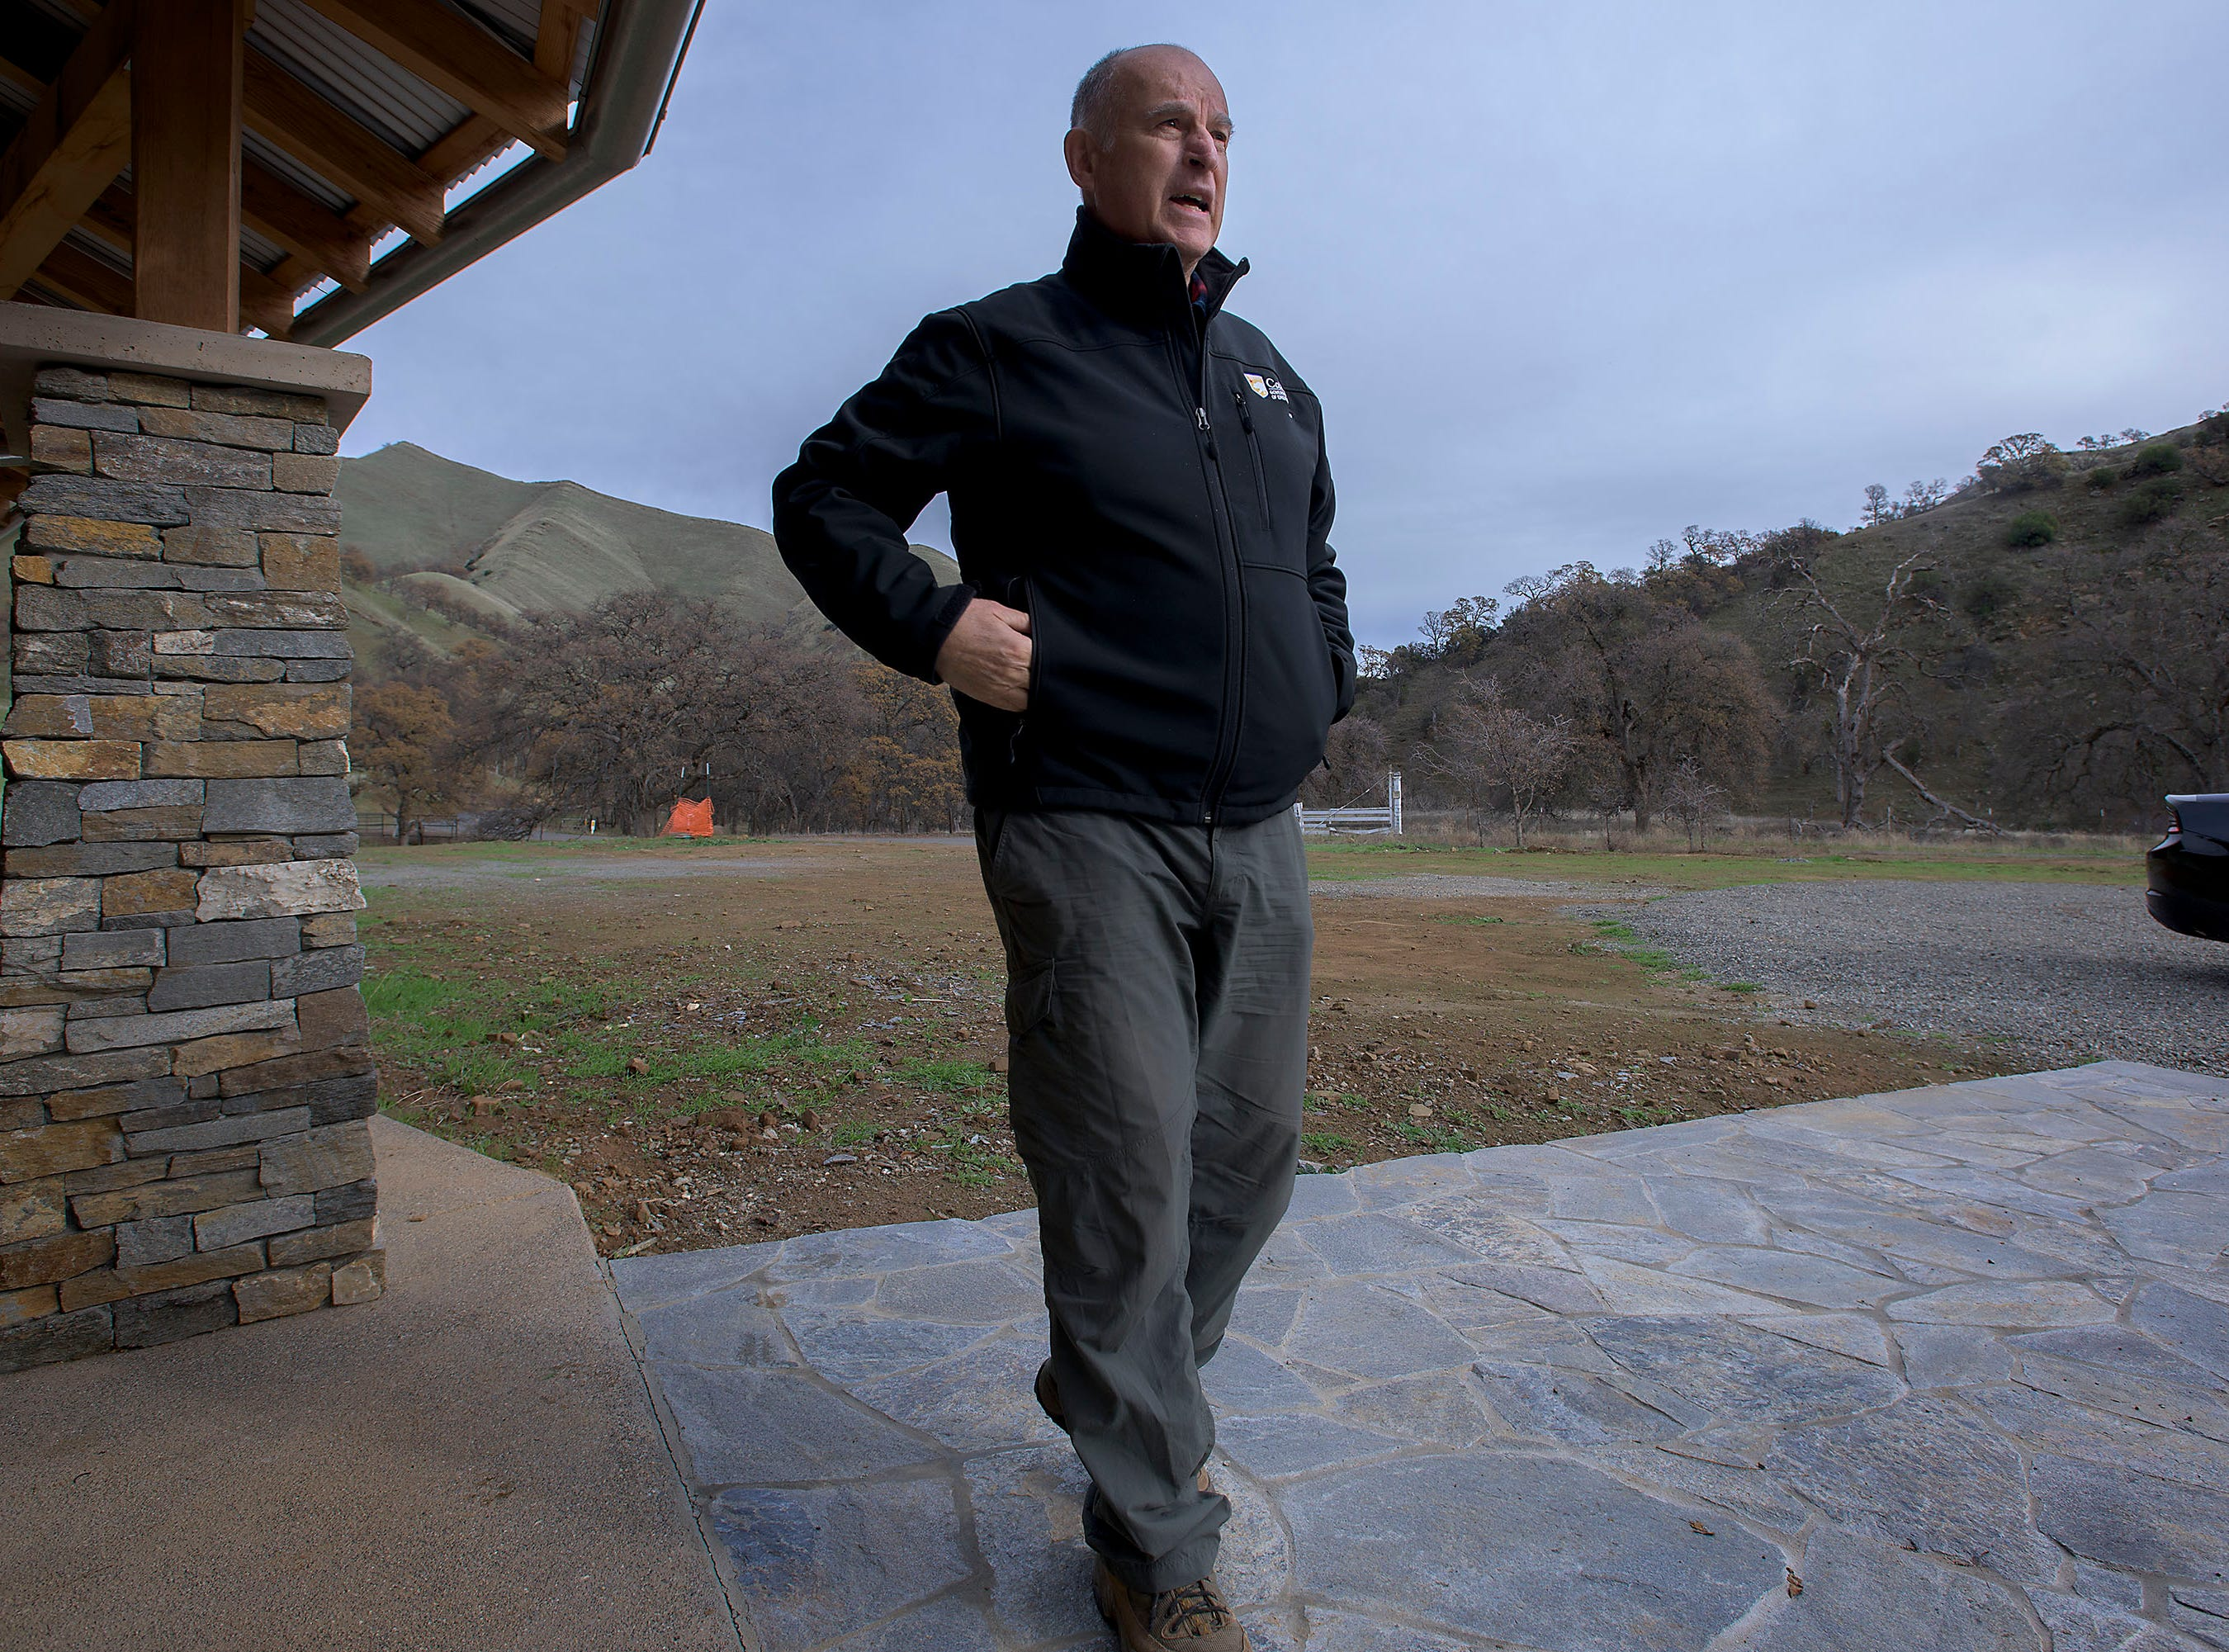 California Gov. Jerry Brown at his ranch home near Williams  on Dec. 22. The Colusa County property once belonged to his great-grandfather.